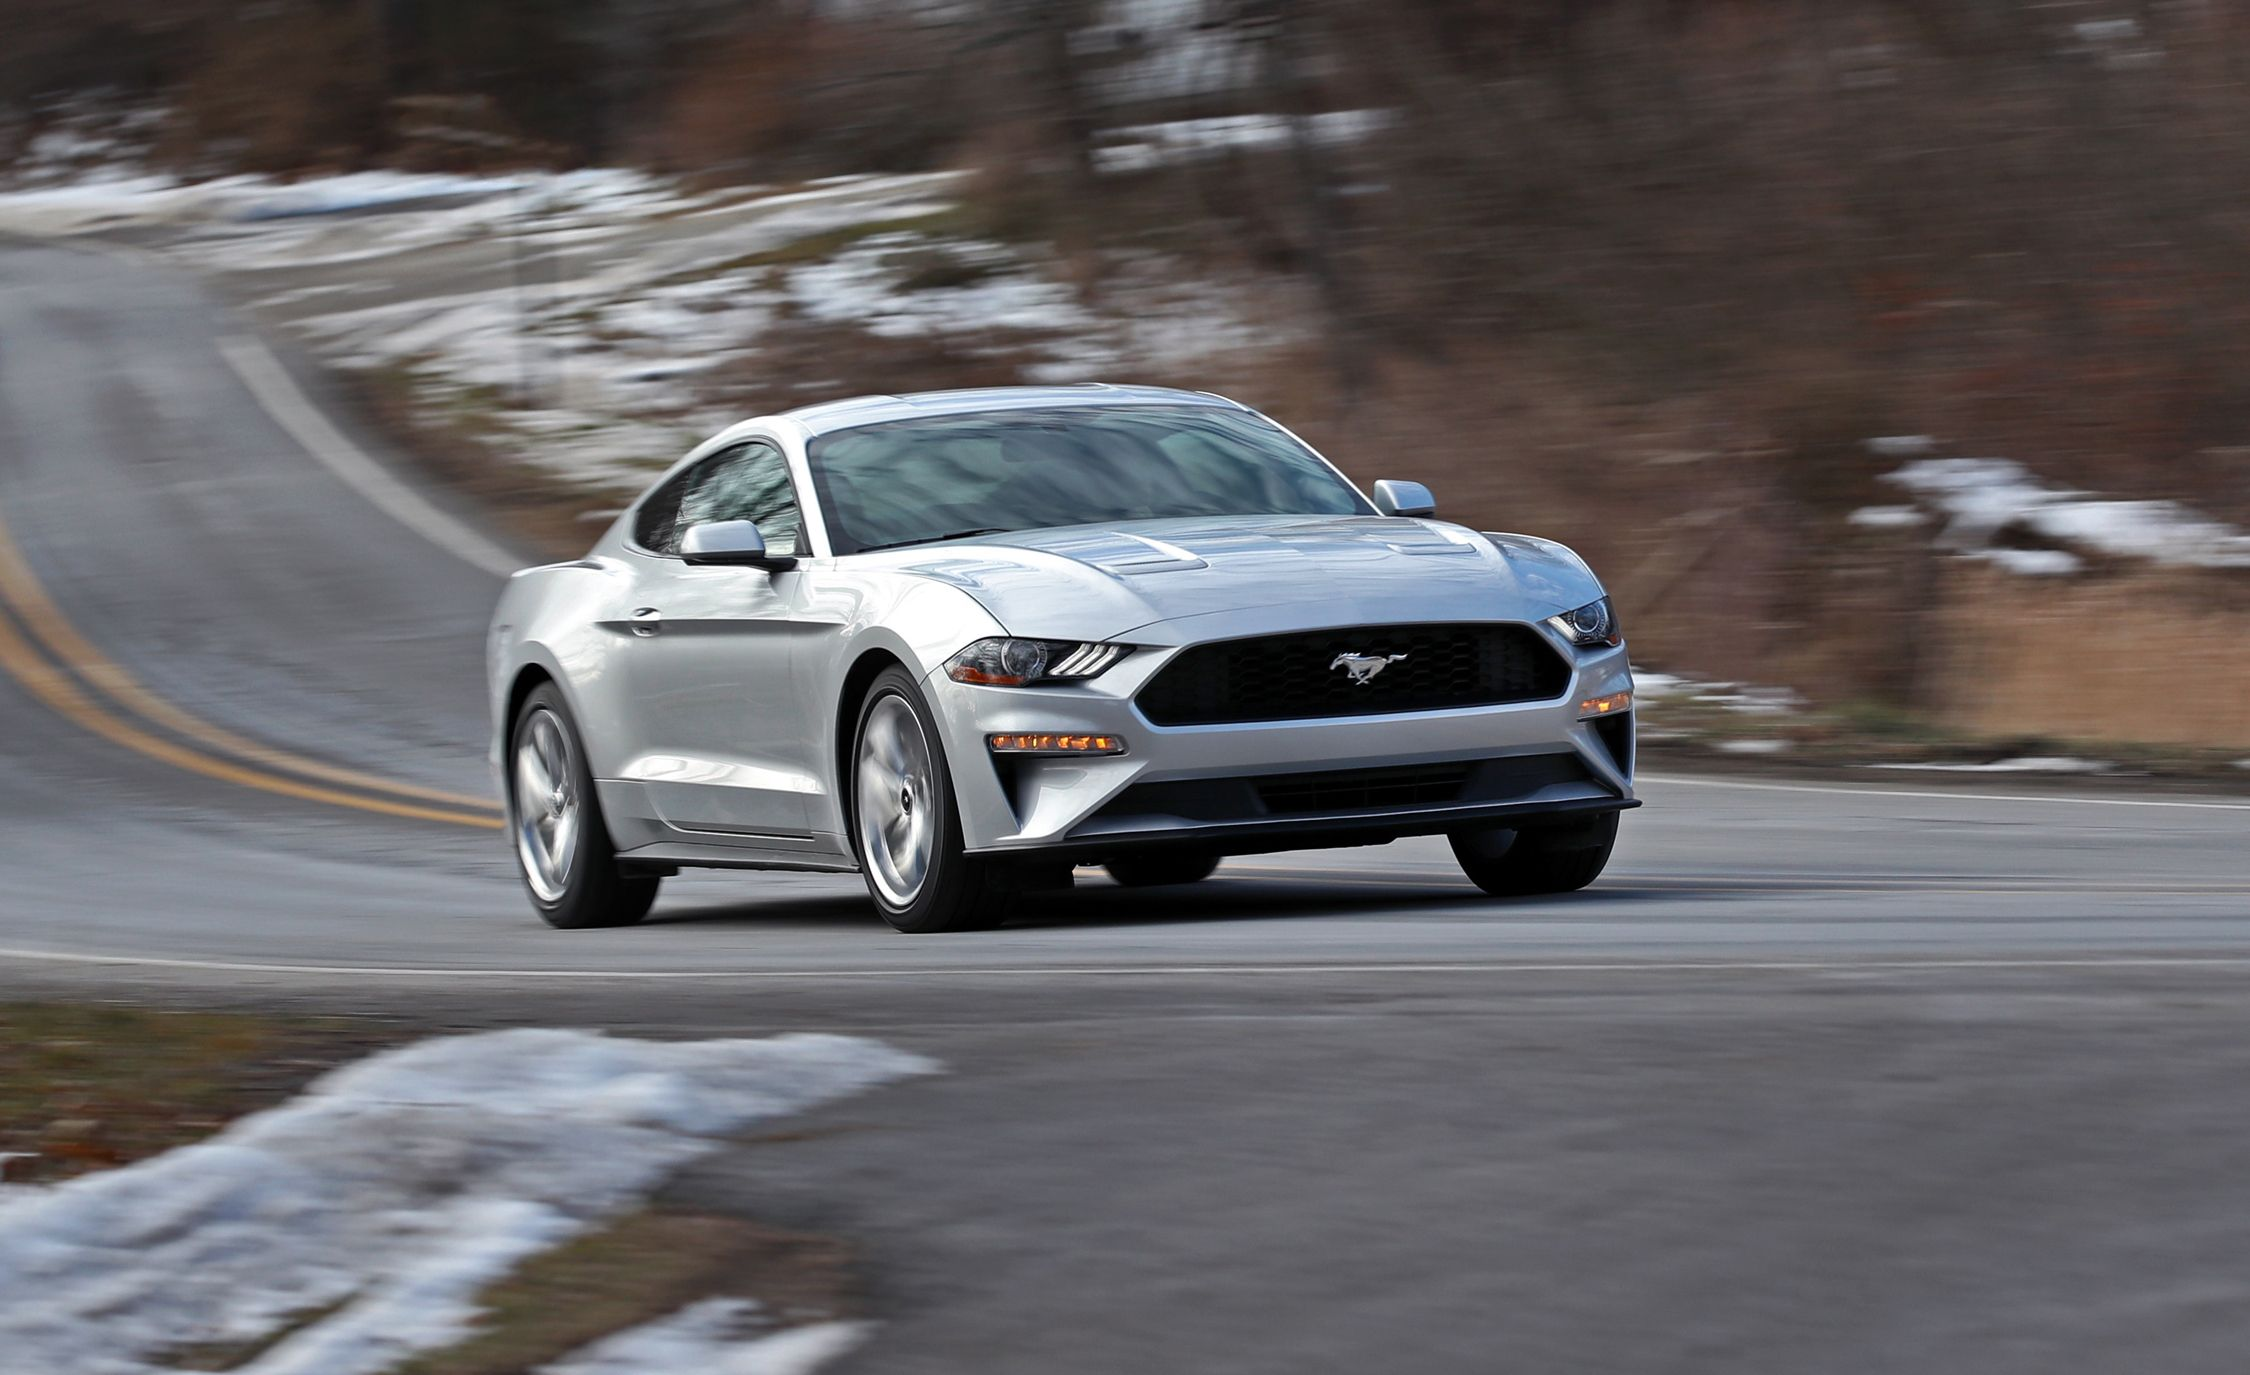 2018 ford mustang 2 3l ecoboost manual test does more torque help rh caranddriver com Mustang Owners Manual Understanding a Manual Vehicle